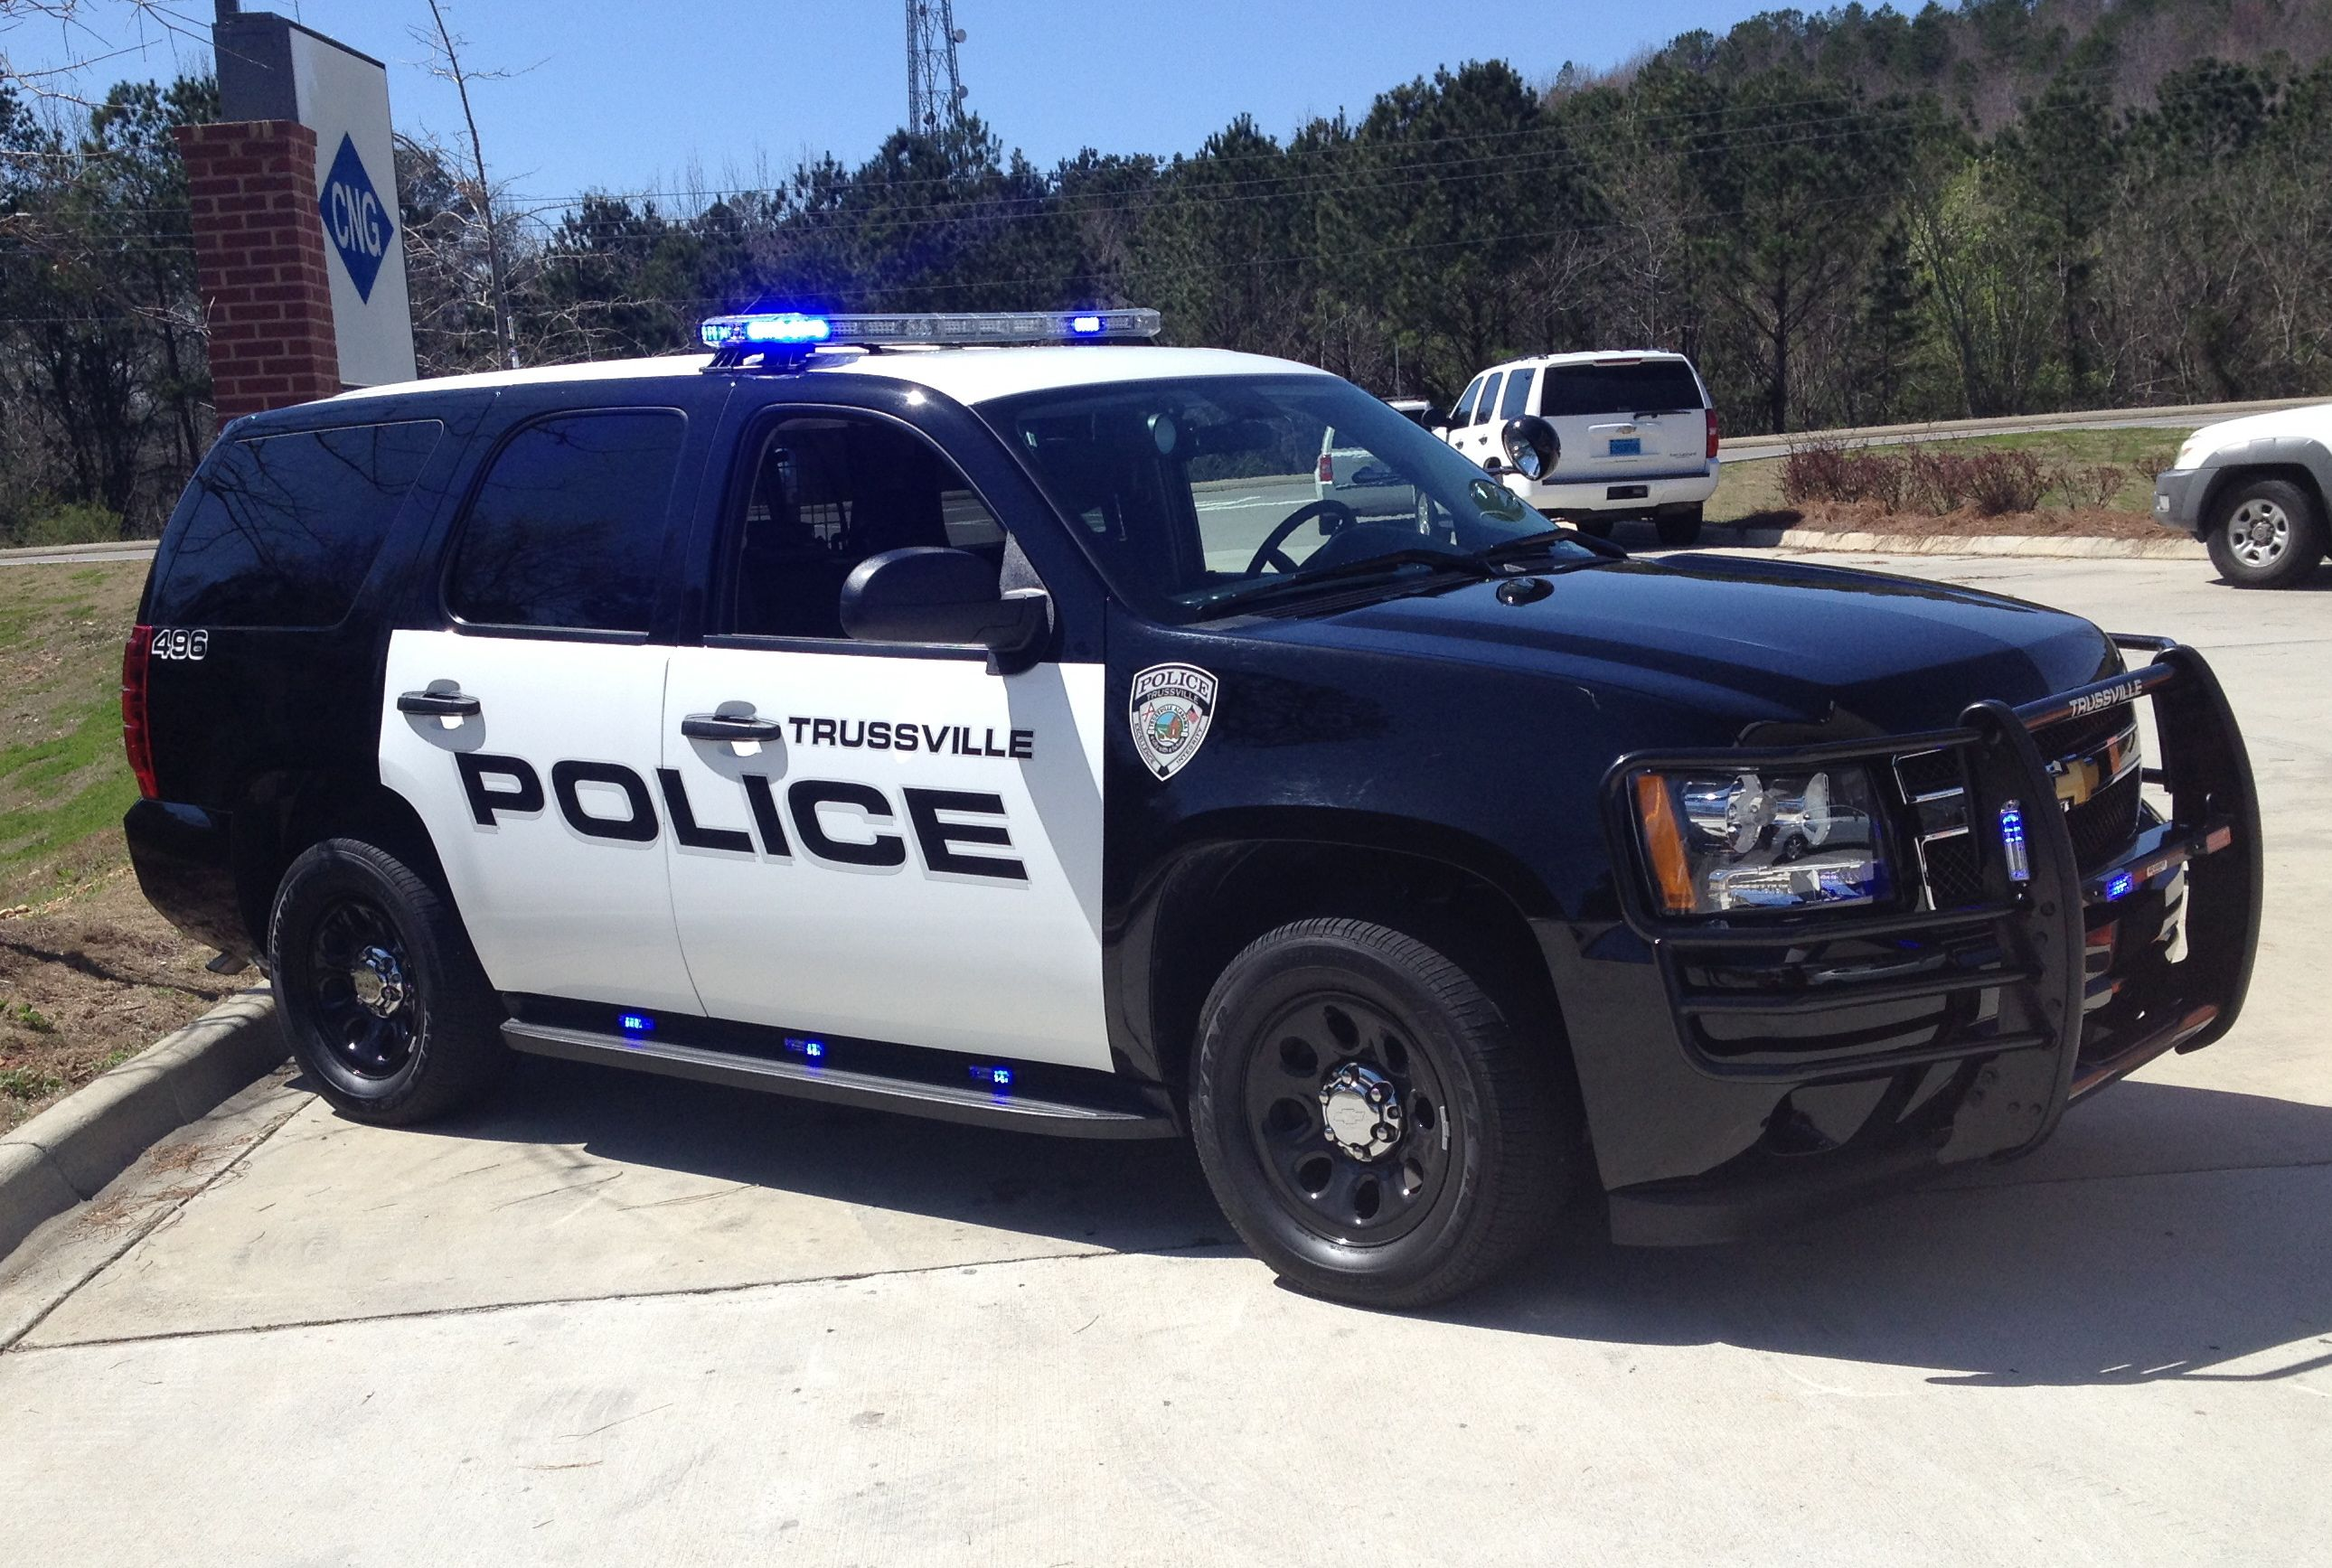 City Of Trussville Alabama Police Department